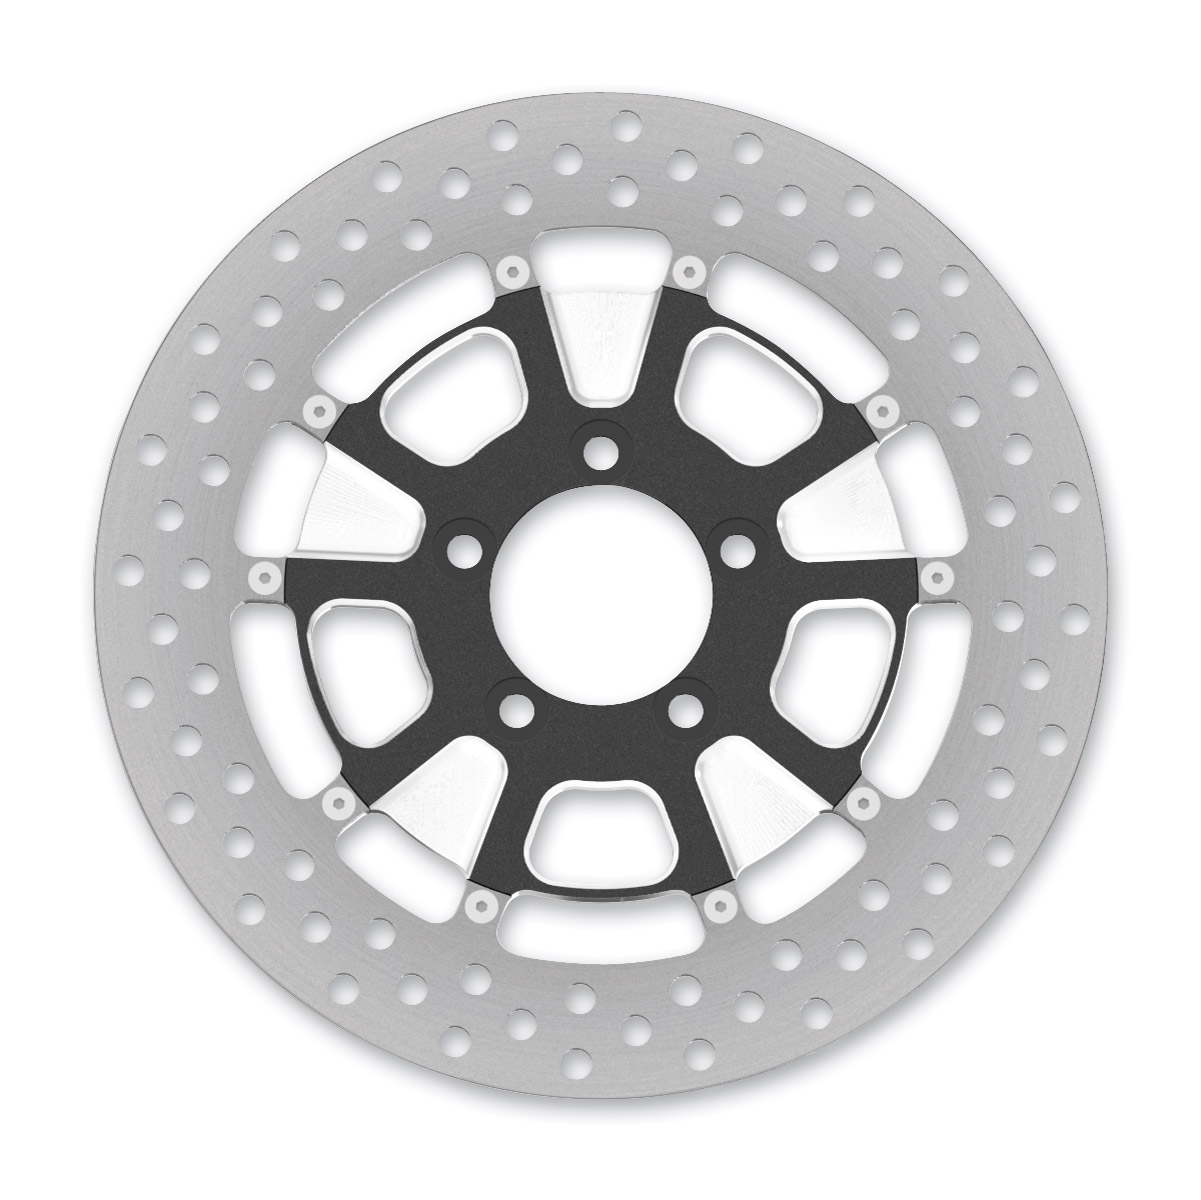 Roland Sands Design Raid Contrast Cut Ops Two-Piece Rear Brake Rotor, 11.5